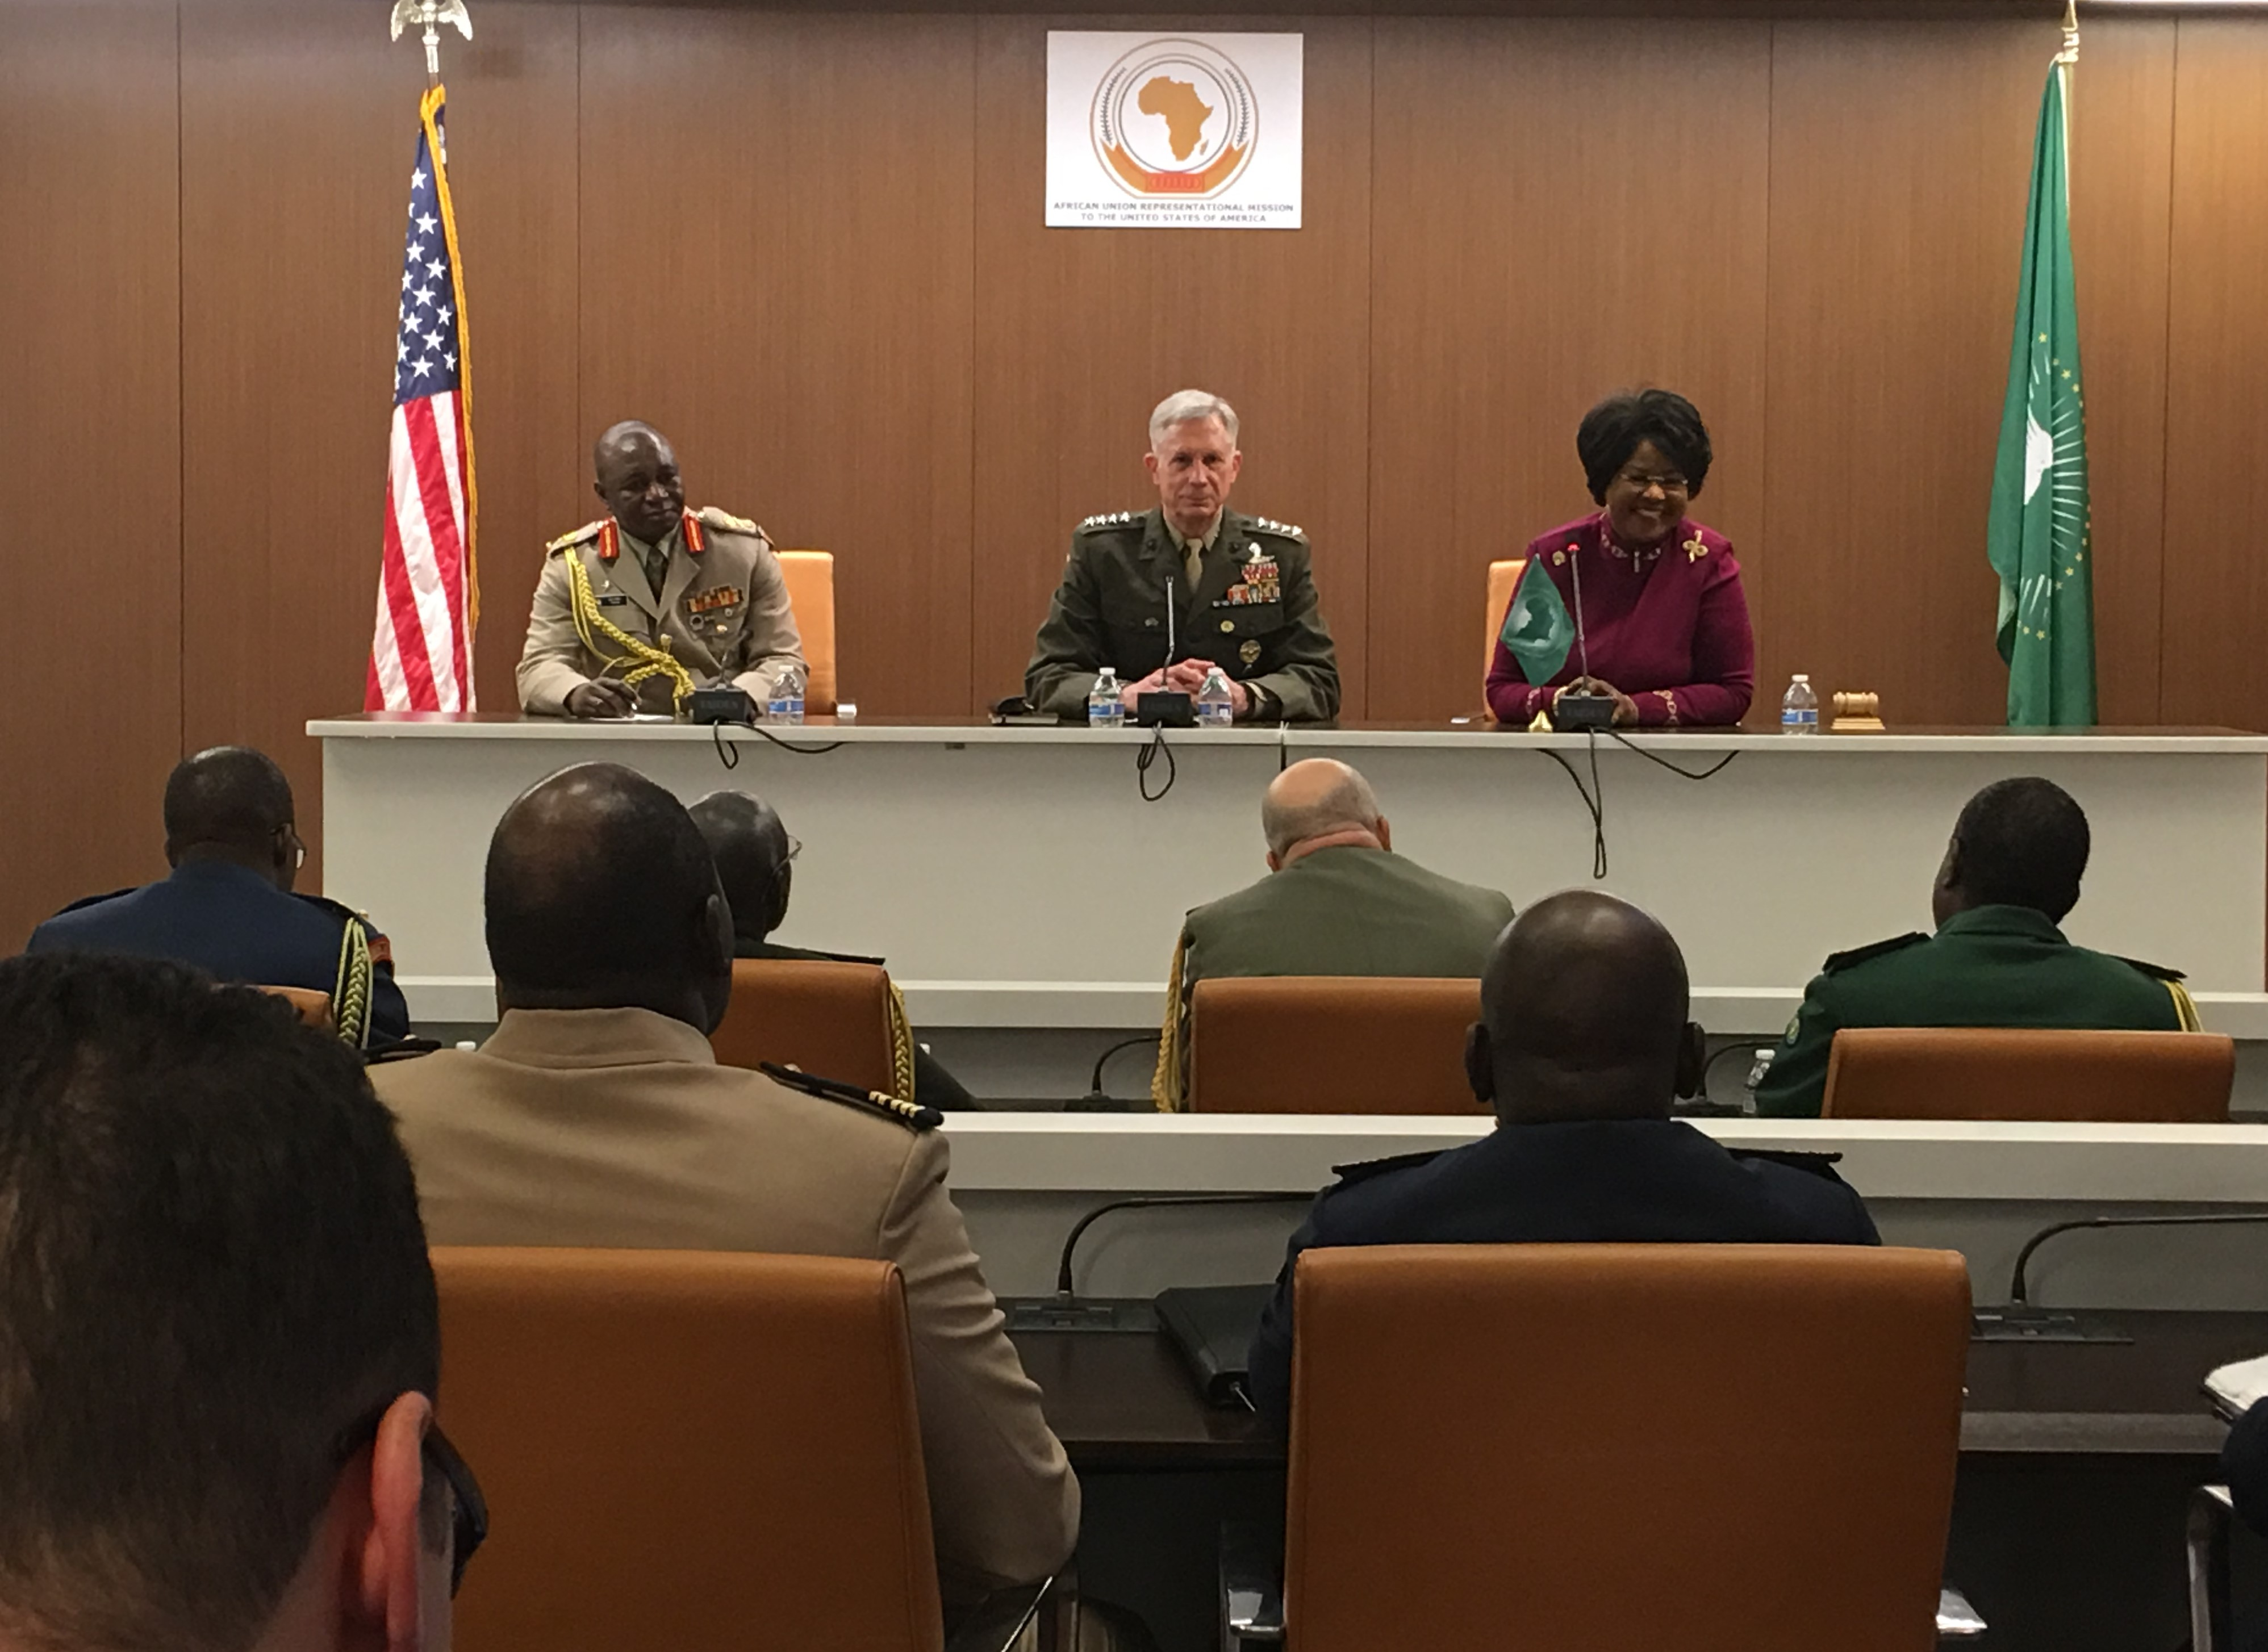 Marine Corps Gen. Thomas D. Waldhauser engaged with 21 defense attaches and the African Union Ambassador to the U.S. in a wide-ranging discussion at the Africa House, in Washington D.C. Waldhauser discussed U.S. strategies pertaining to defense, Africa, and common challenges on the continent. The U.S. is committed to being a preferred security partner of choice,  engaging in activities to ensure U.S. interests in Africa are protected against destabilizing competitor state influence, activities, and aggression.